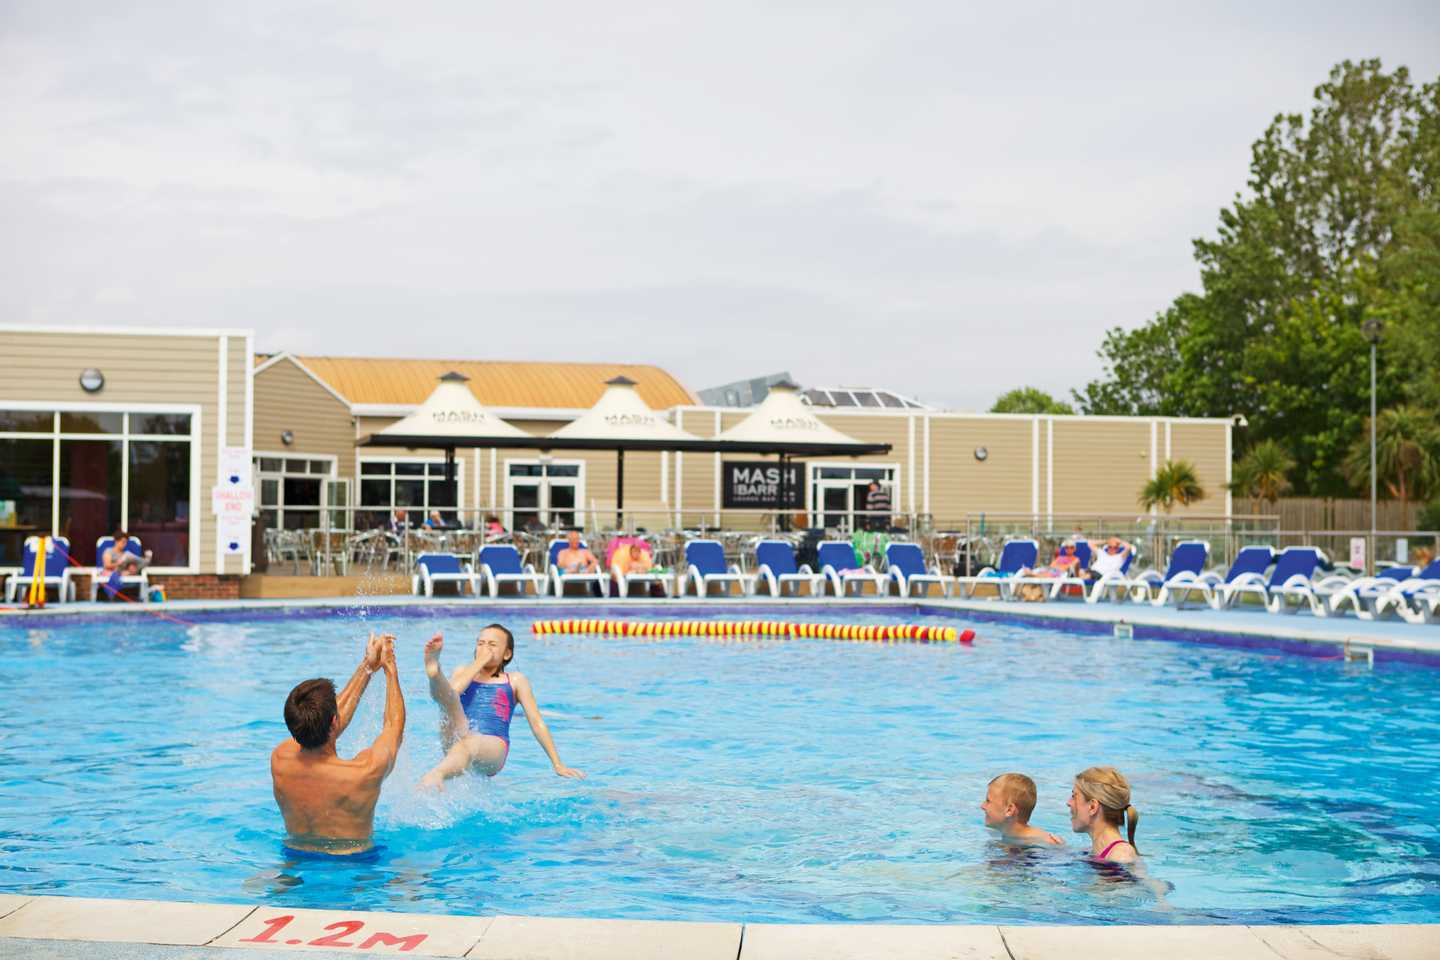 Family splashing around in the heated outdoor pool